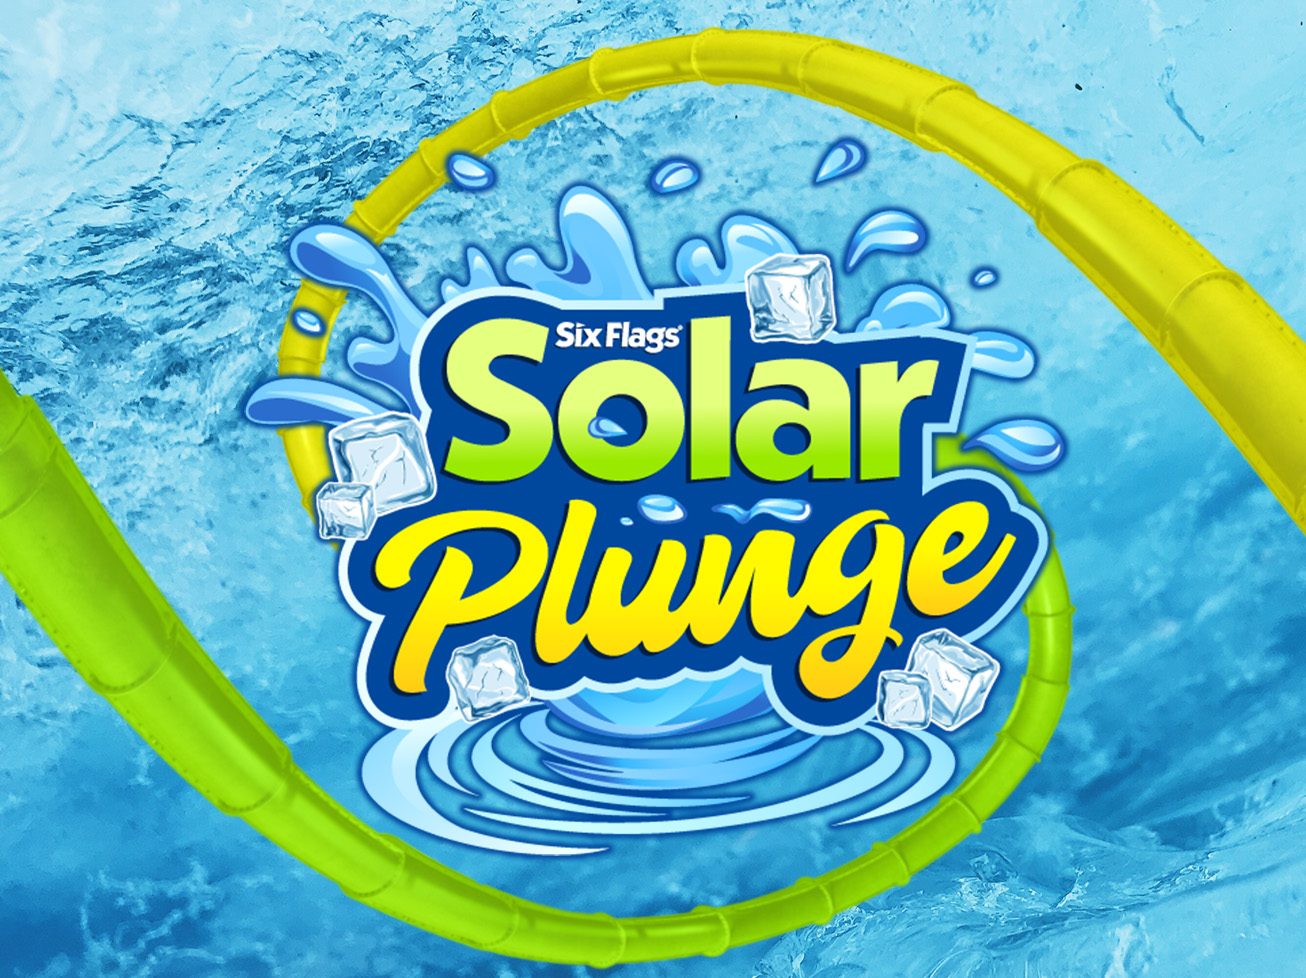 Solarplunge so lpheader 653x480 2